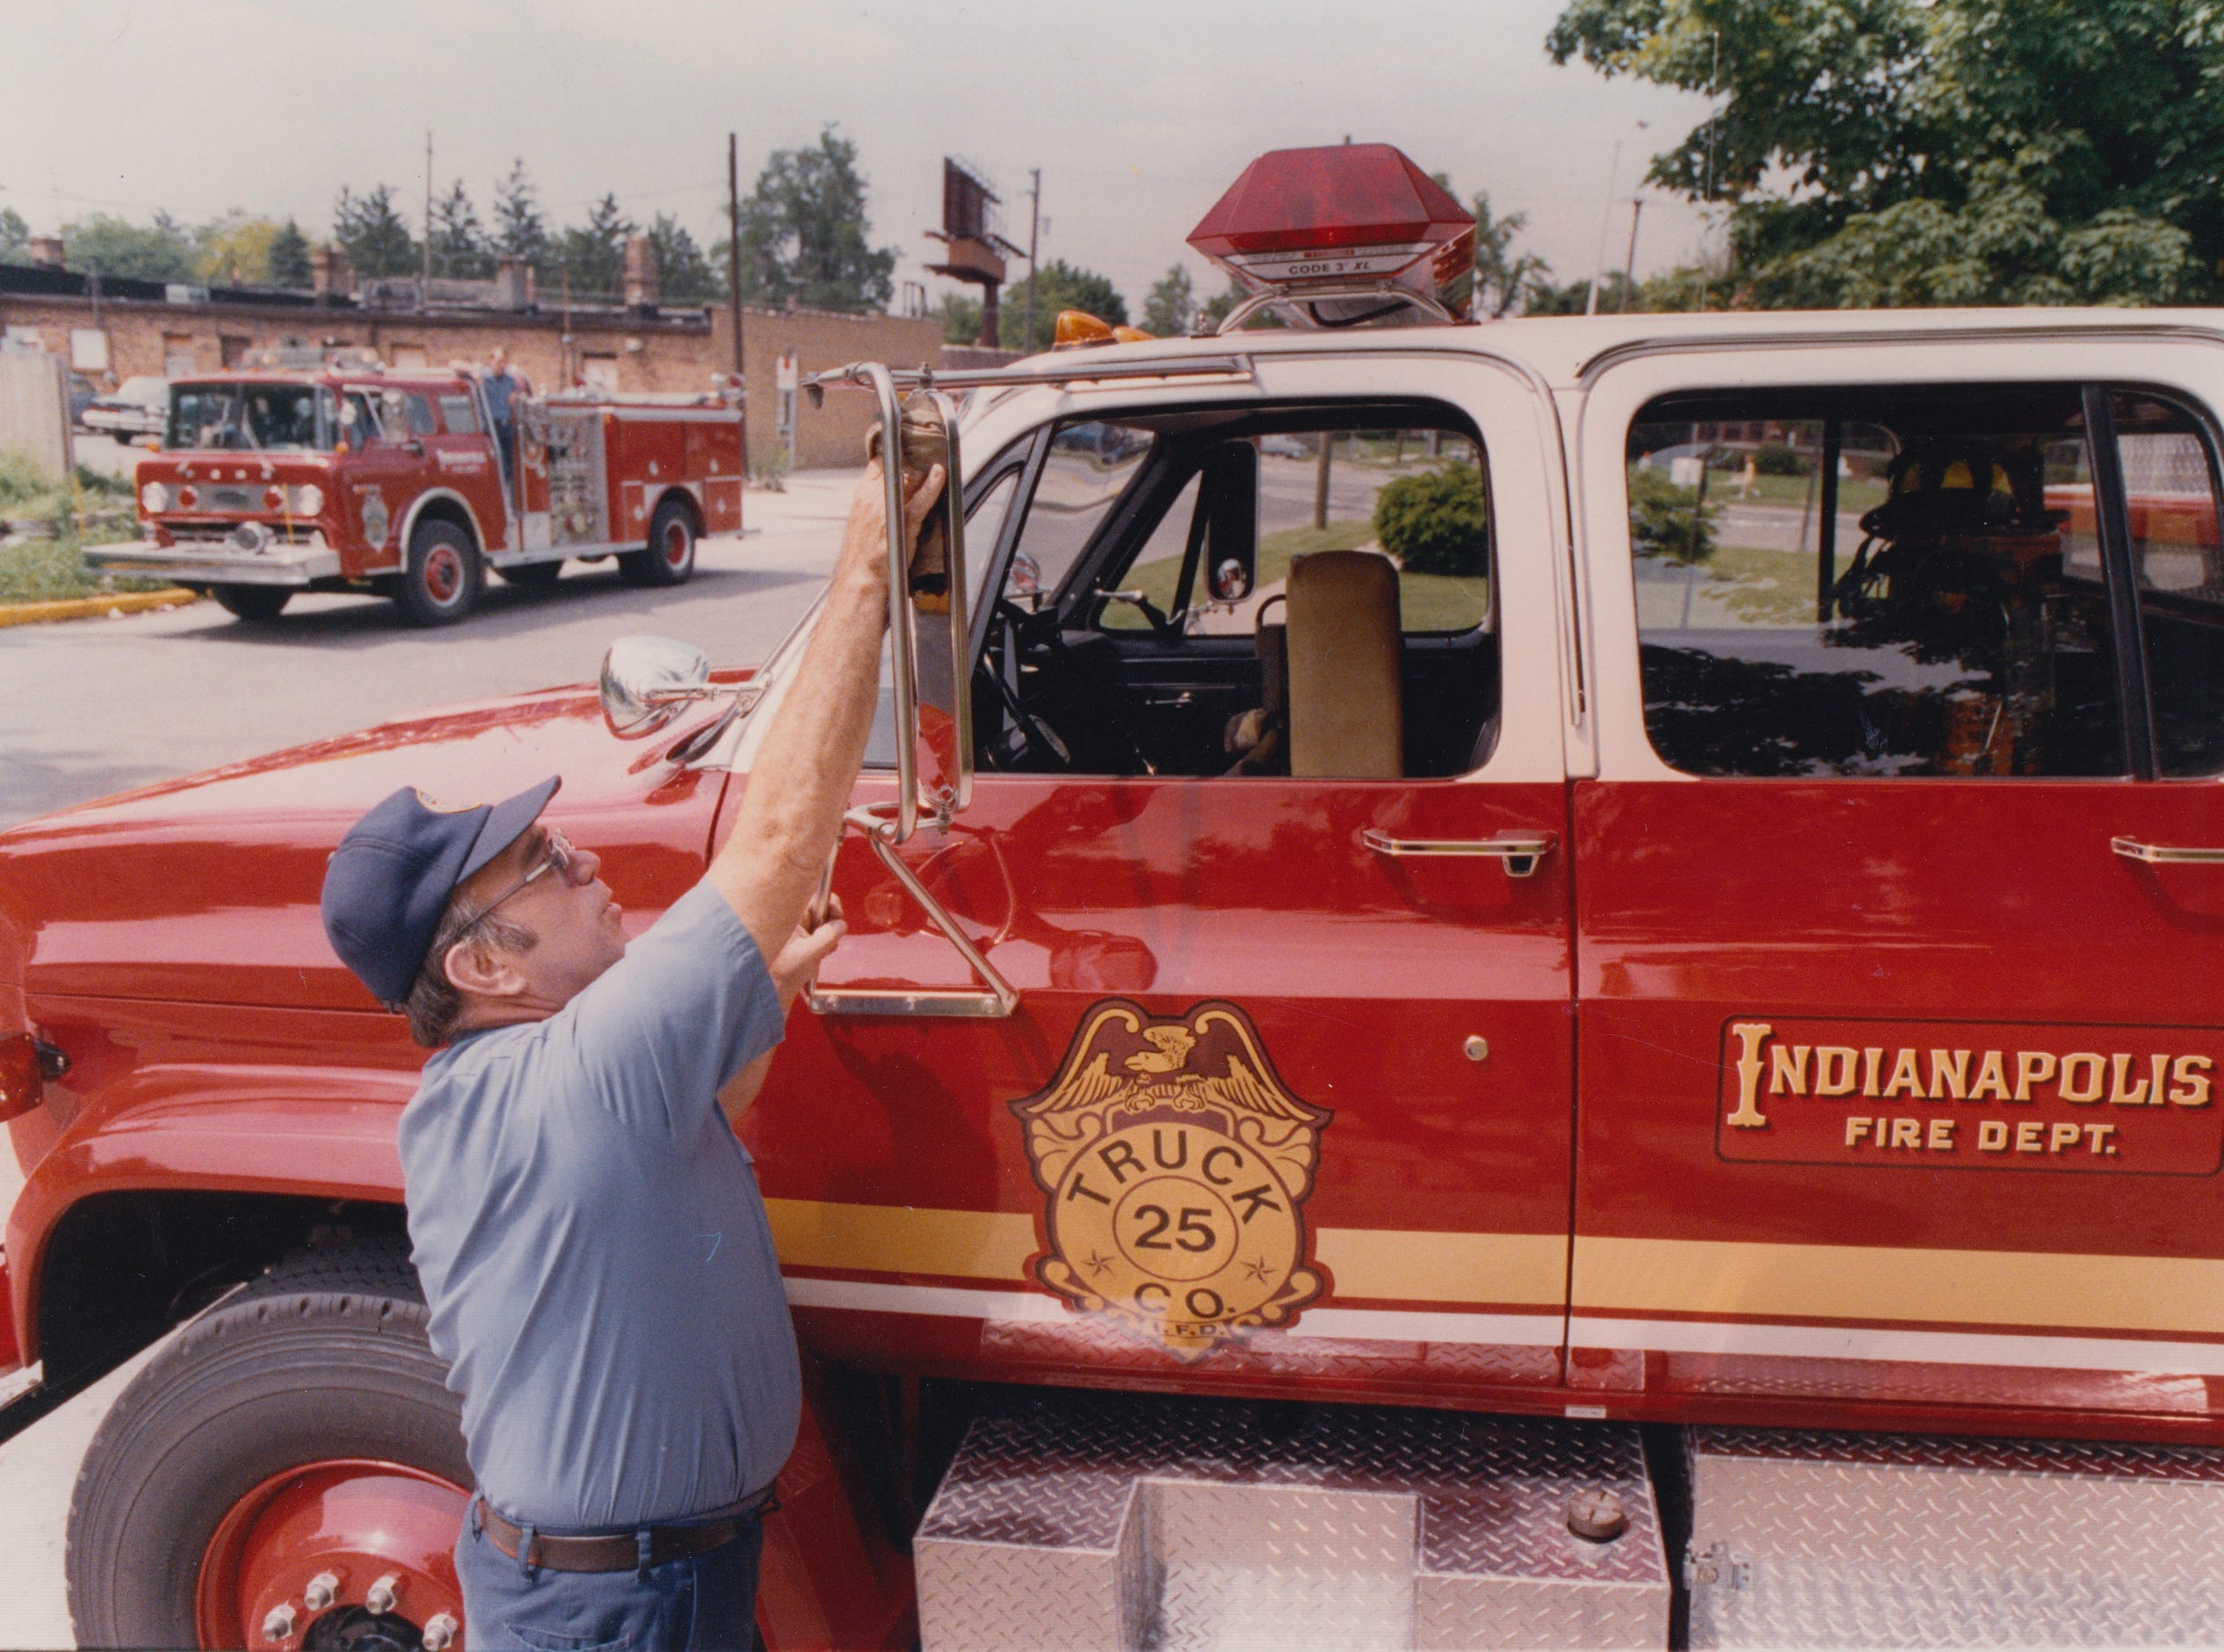 Indianapolis Fire Department engineer Ron L. Bowman polishes the cab of Truck 25 outside Station 25 on the Eastside May 28, 1990.